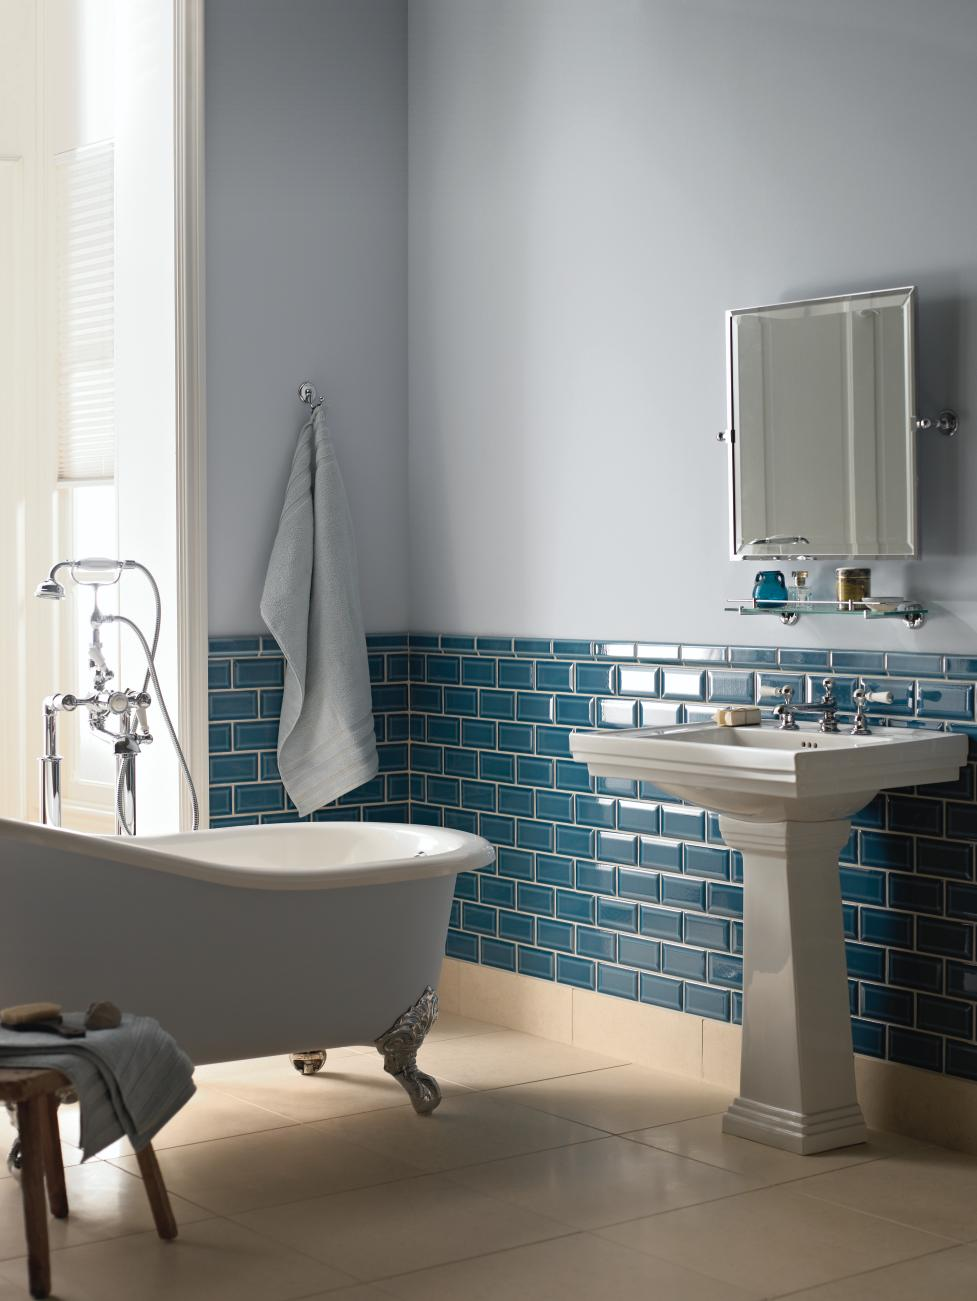 Fired earth tiles bright bazaar by will taylor for Teal and gray bathroom ideas